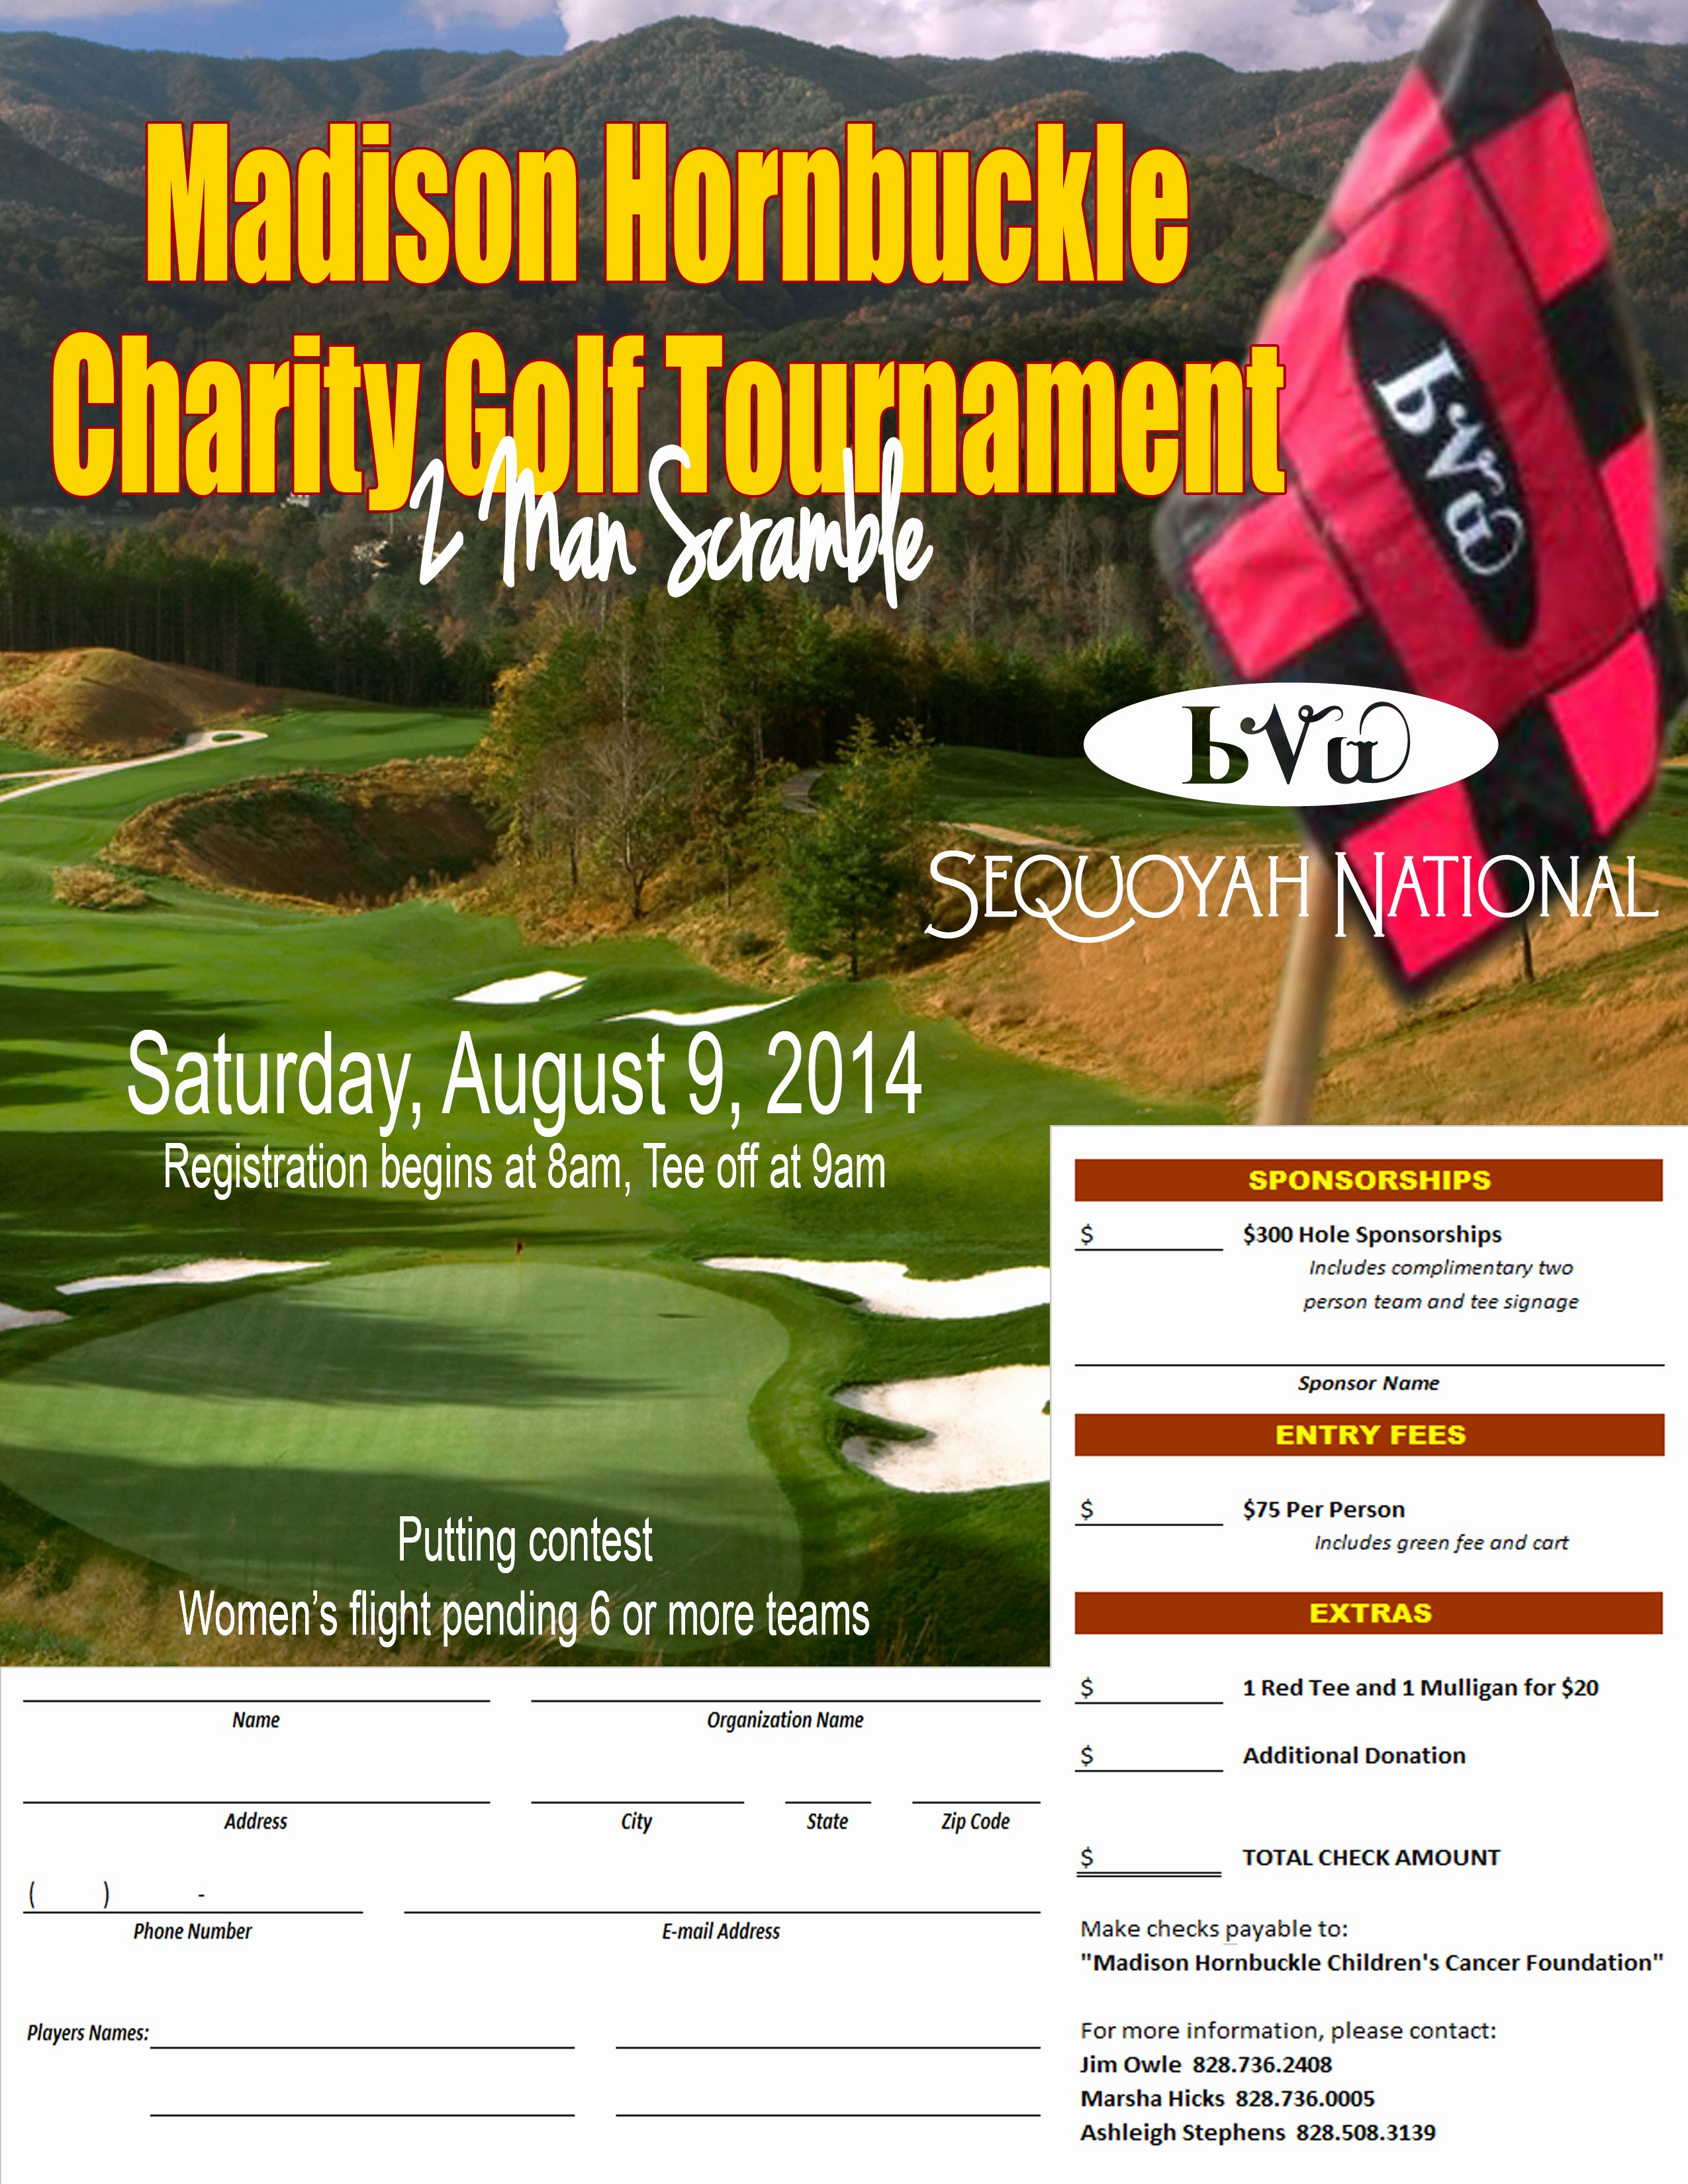 Charity Golf tournament Flyer Awesome Madison Hornbuckle Charity Golf tournament Flyer